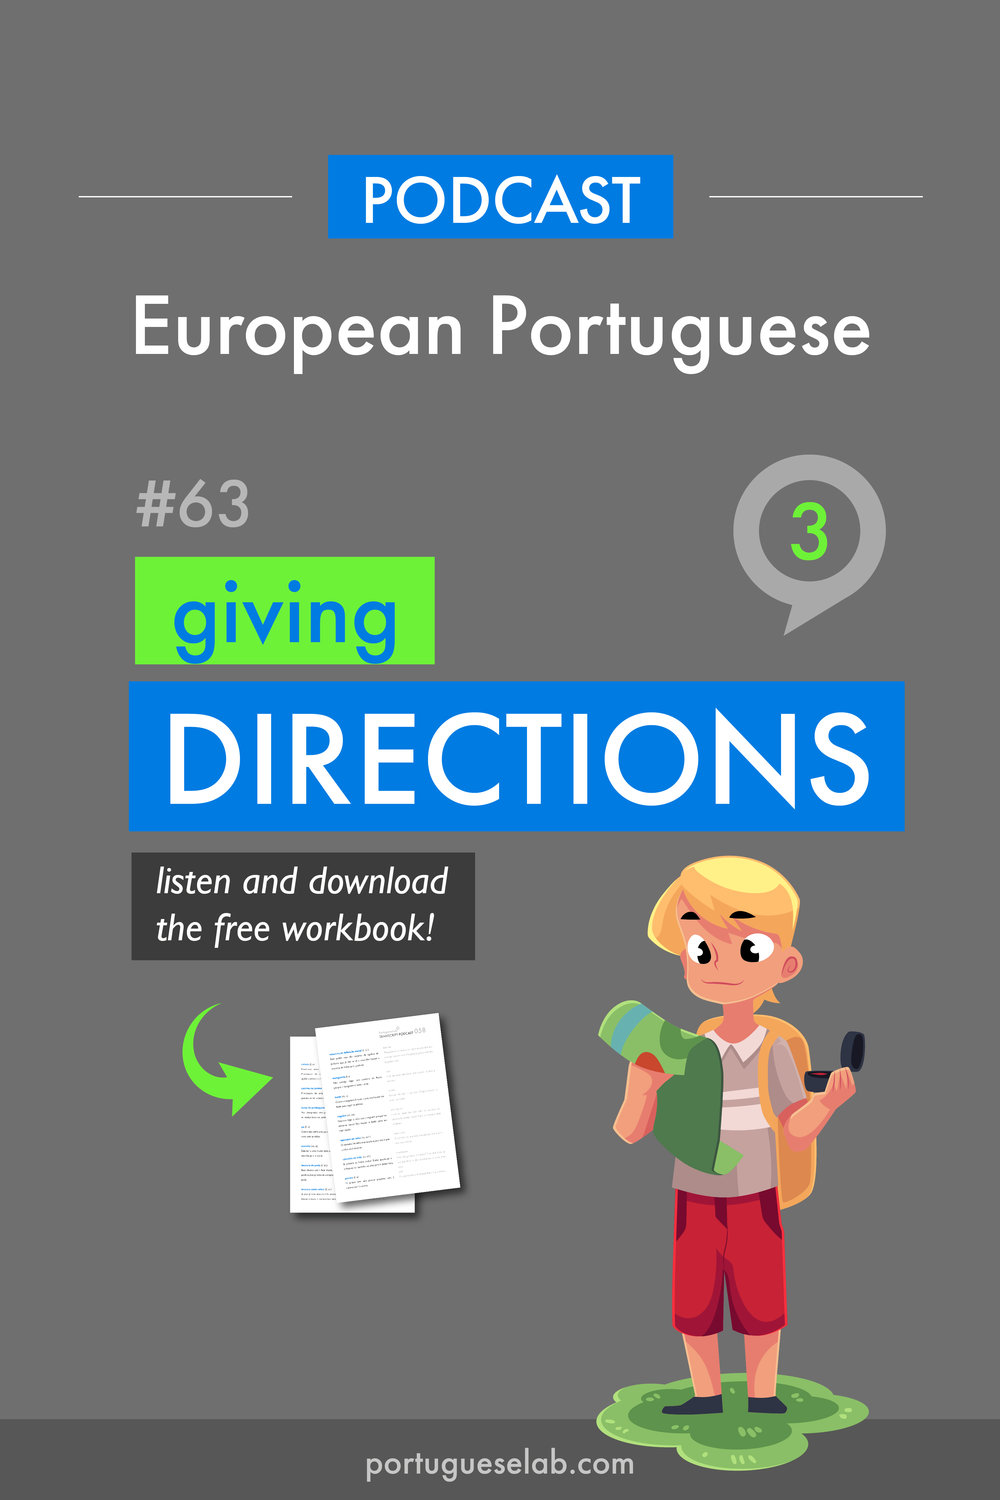 Portuguese Lab Podcast - European Portuguese - 63 - Giving directions.jpg